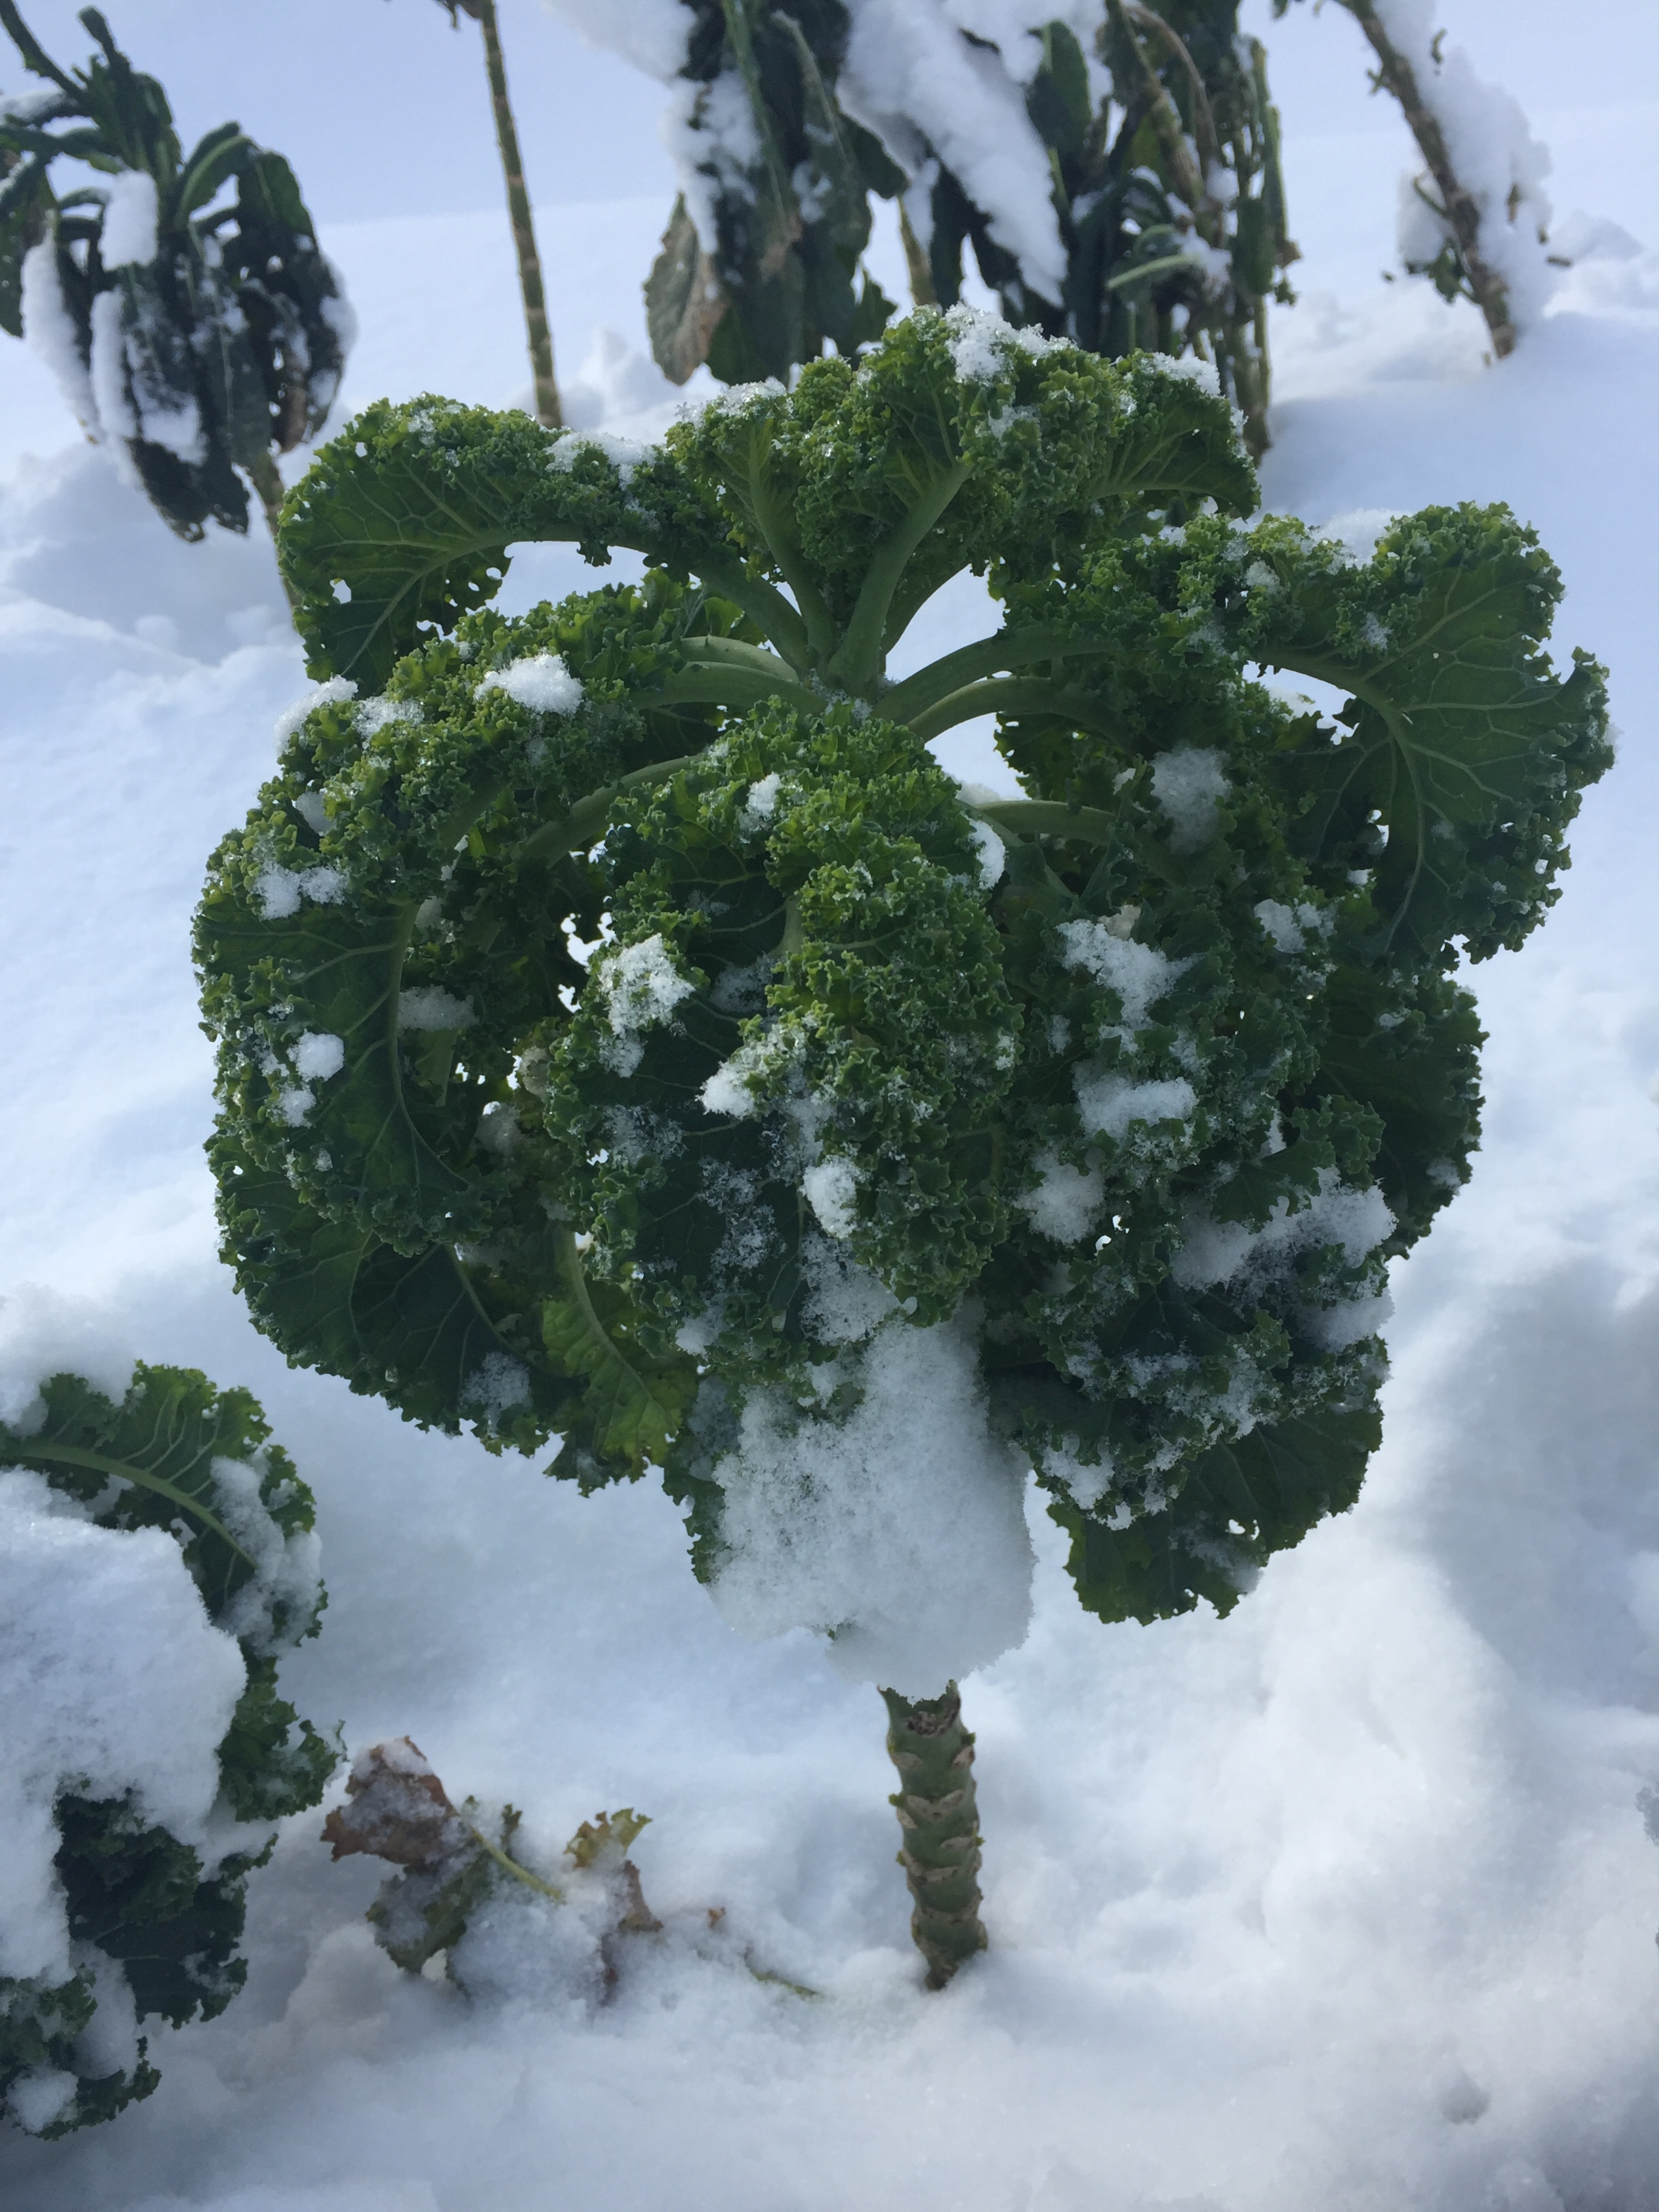 Sweet tasting winter kale